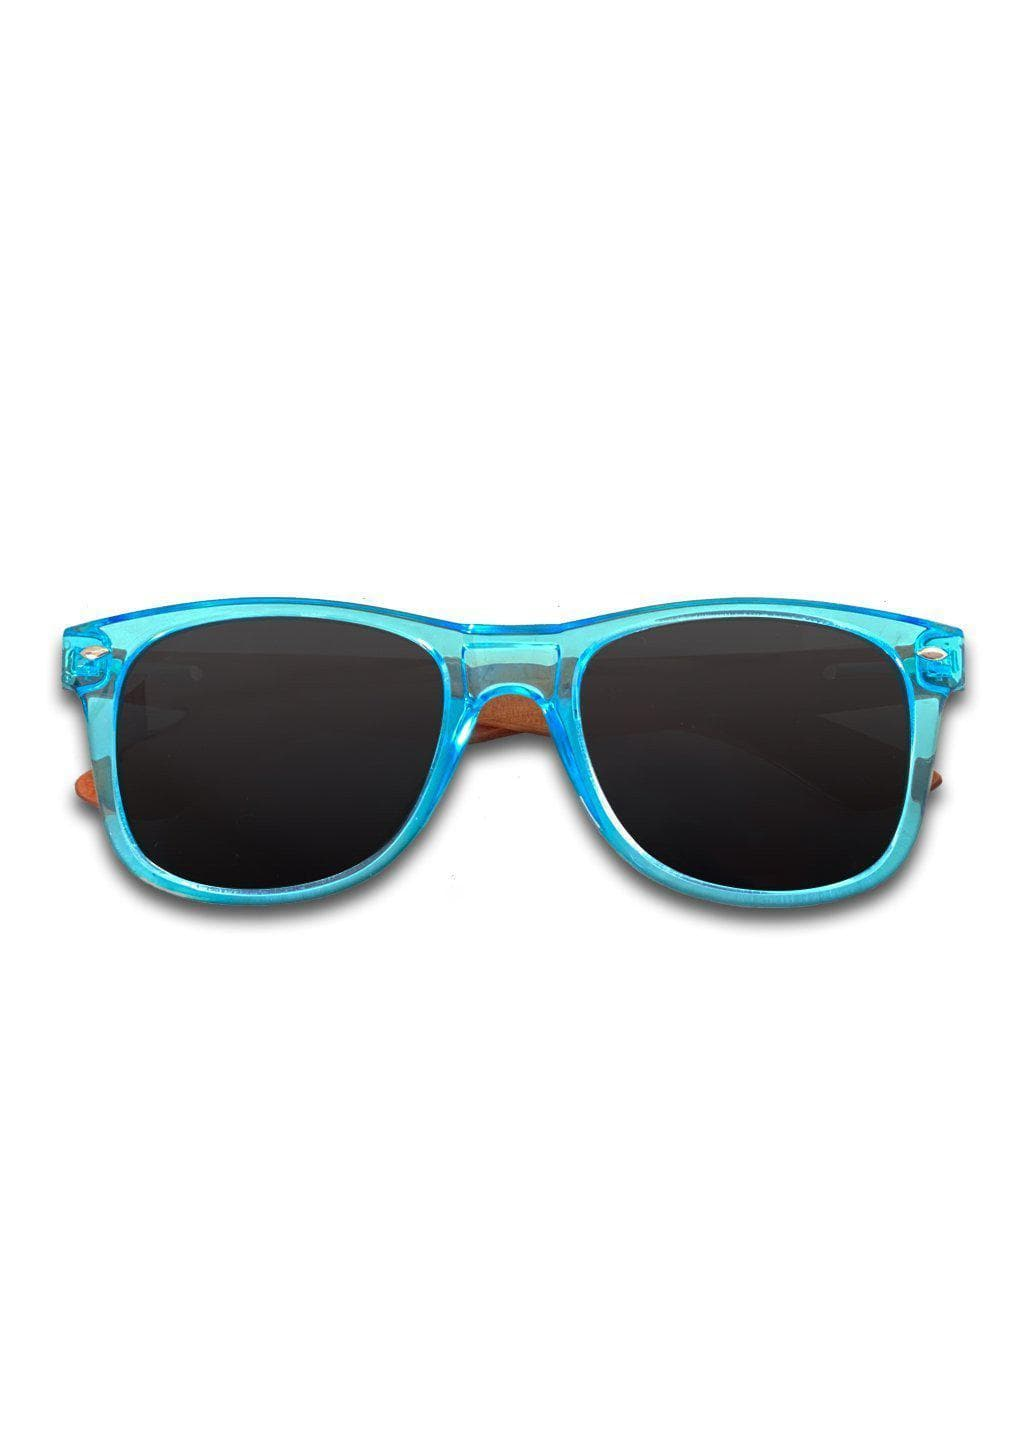 Eyewood Wayfarer - Sapphire - Black - Transparent blue frame with black lenses and temples made of wood.